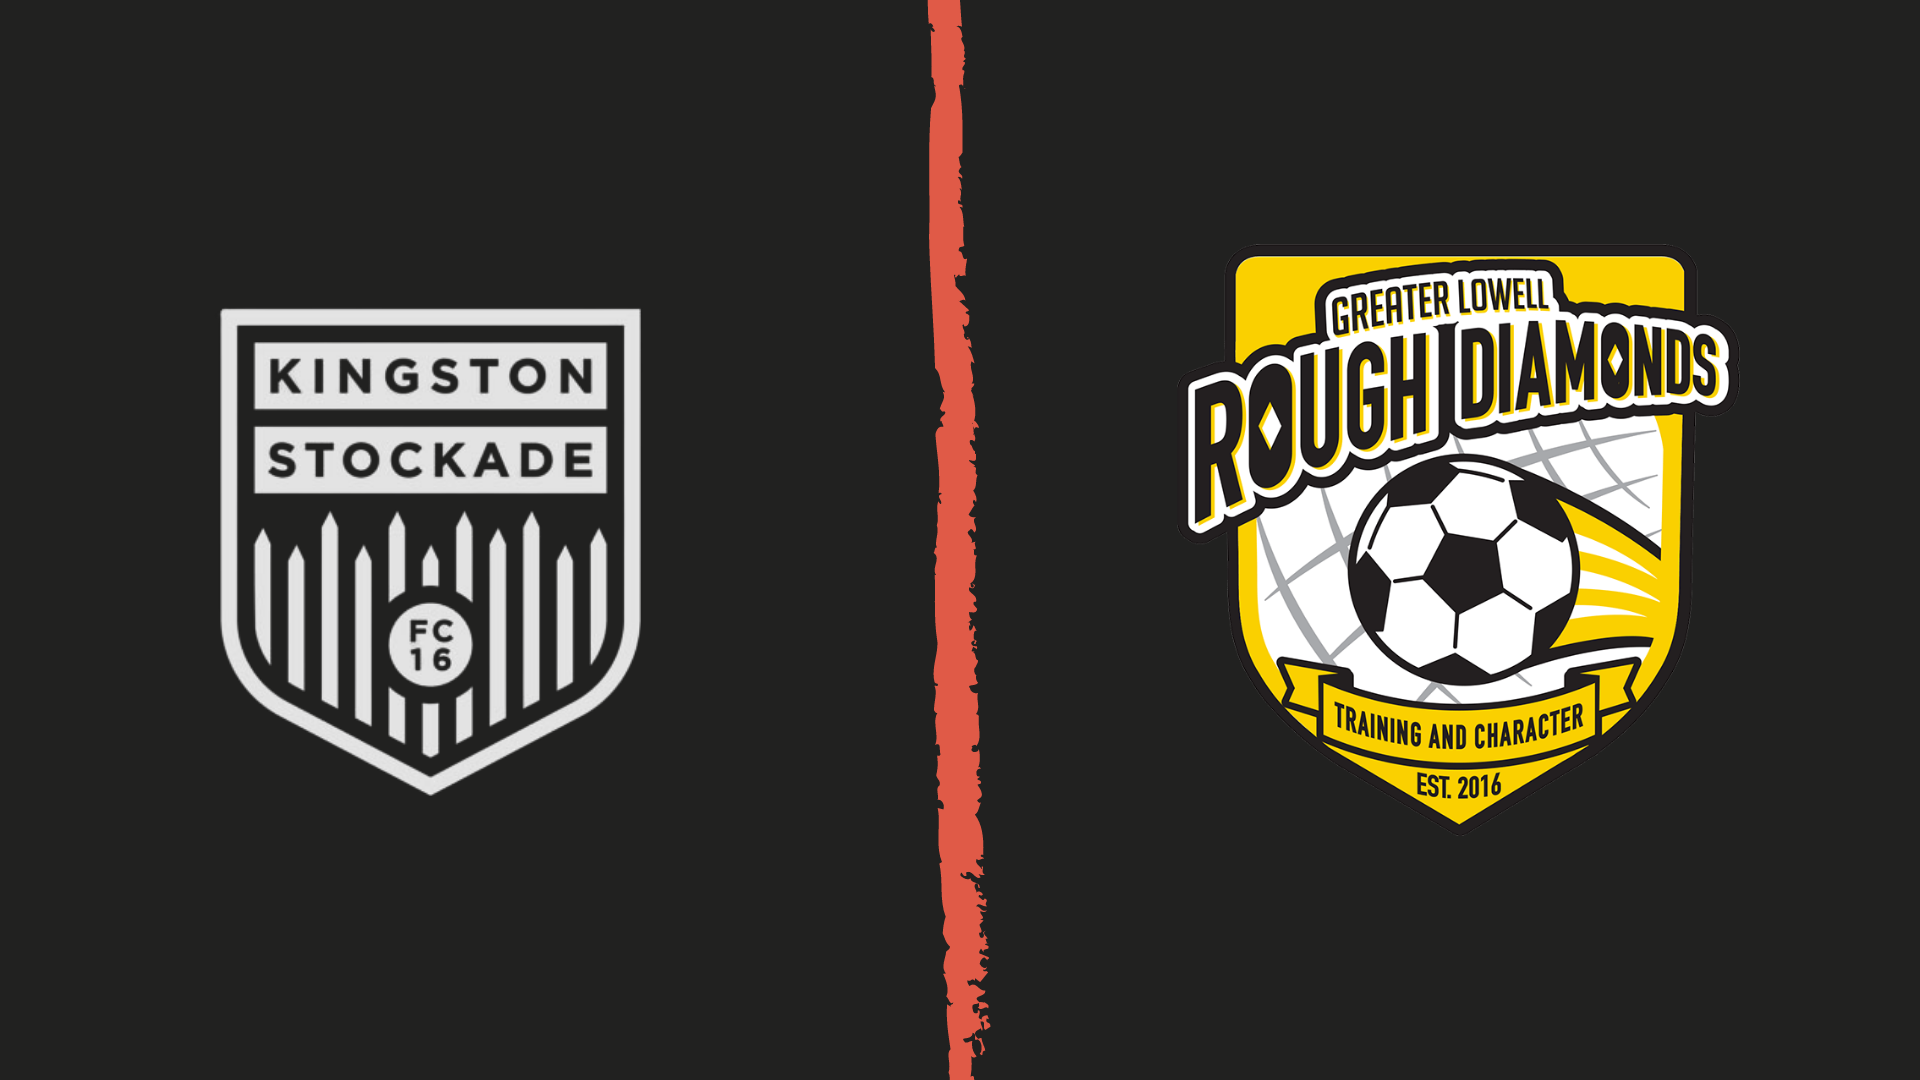 Kingston Stockade FC vs Rough Diamonds